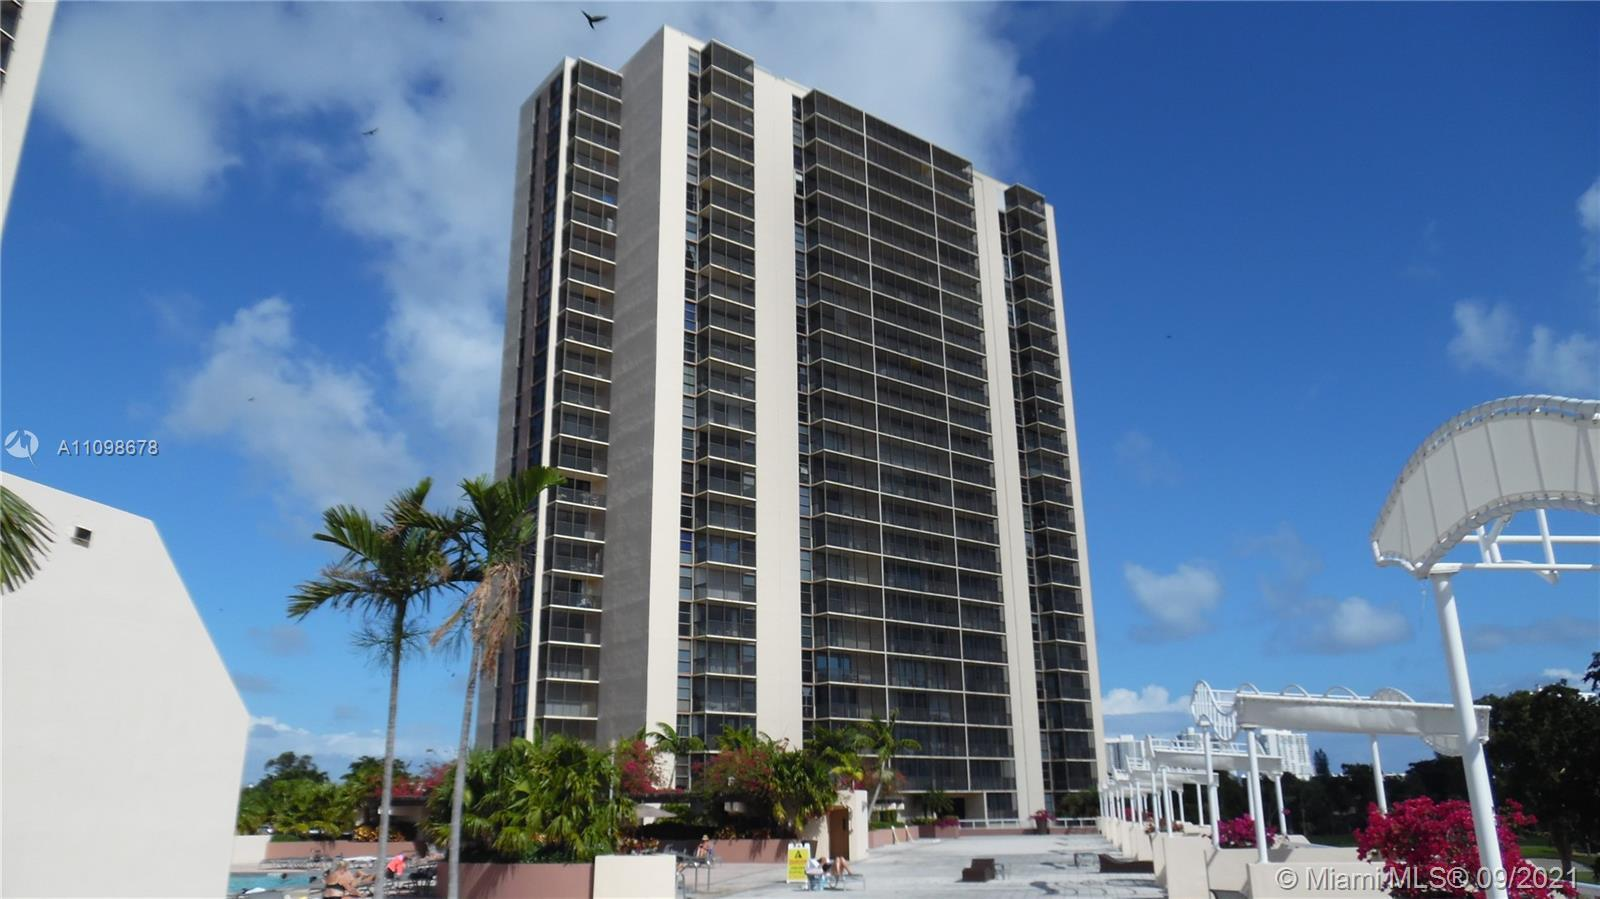 WOW. GREAT 2/2 IN VERY DESIRABLE CORONADO BUILDING, IN THE HEART OF THE TURNBERRY GOLF COURSE. THIS